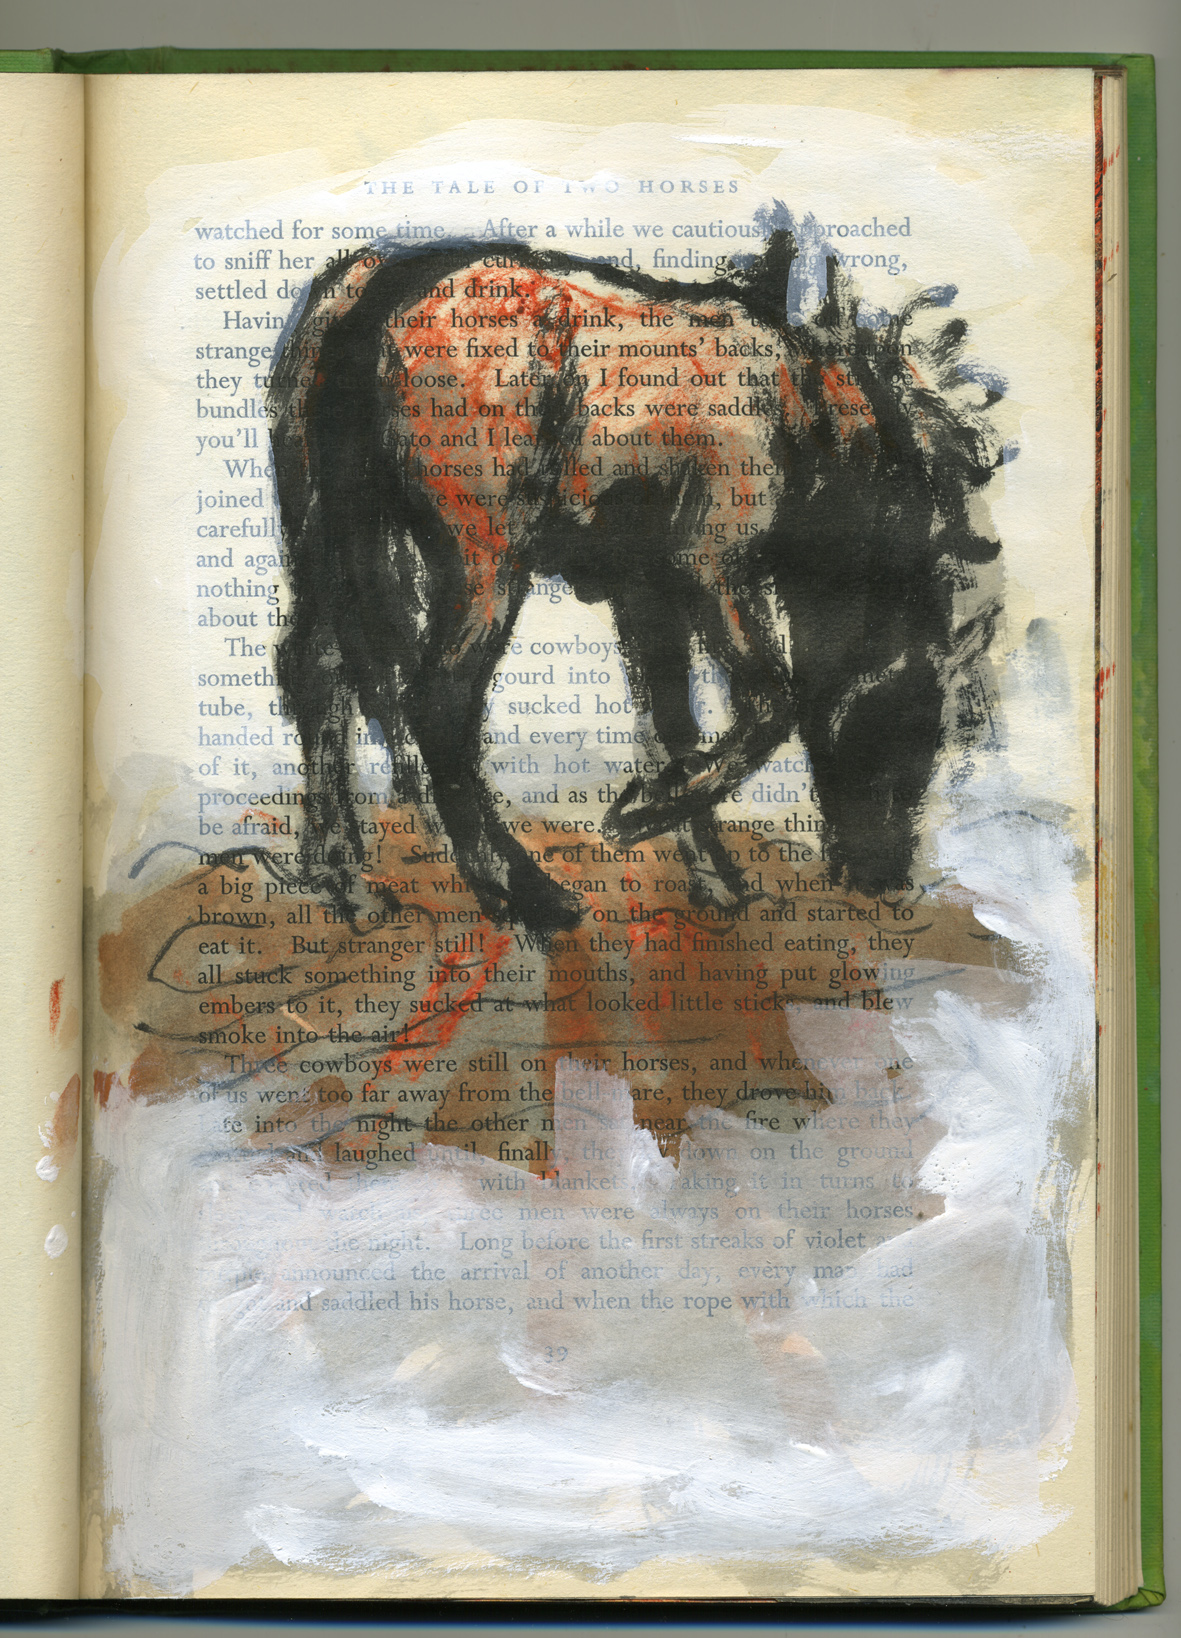 equine soliloquy hunched horse